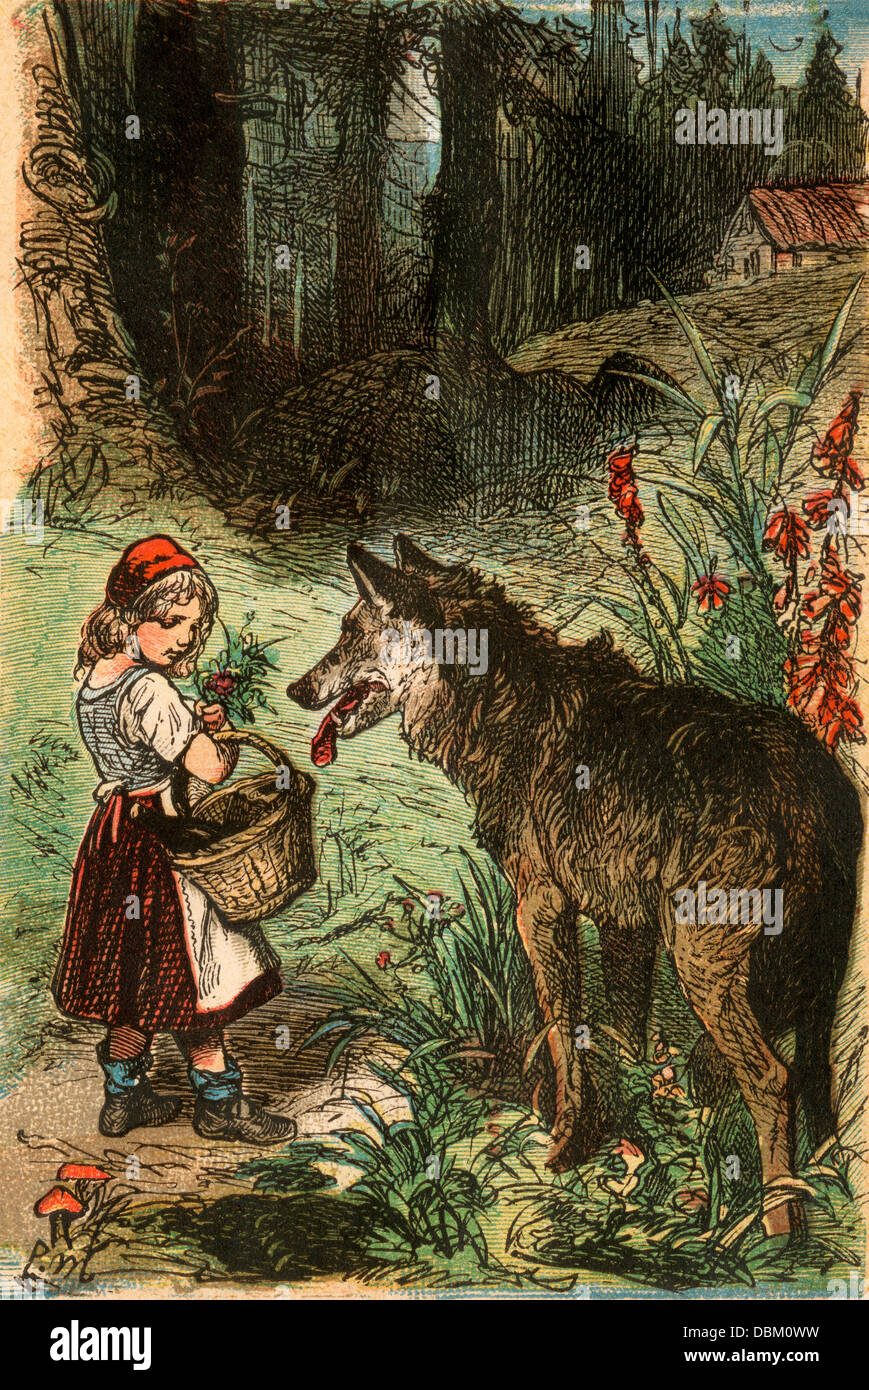 Little Red Riding Hood, from a Berlin edition of Grimms' Fairy Tales, 1865. Color plate - Stock Image